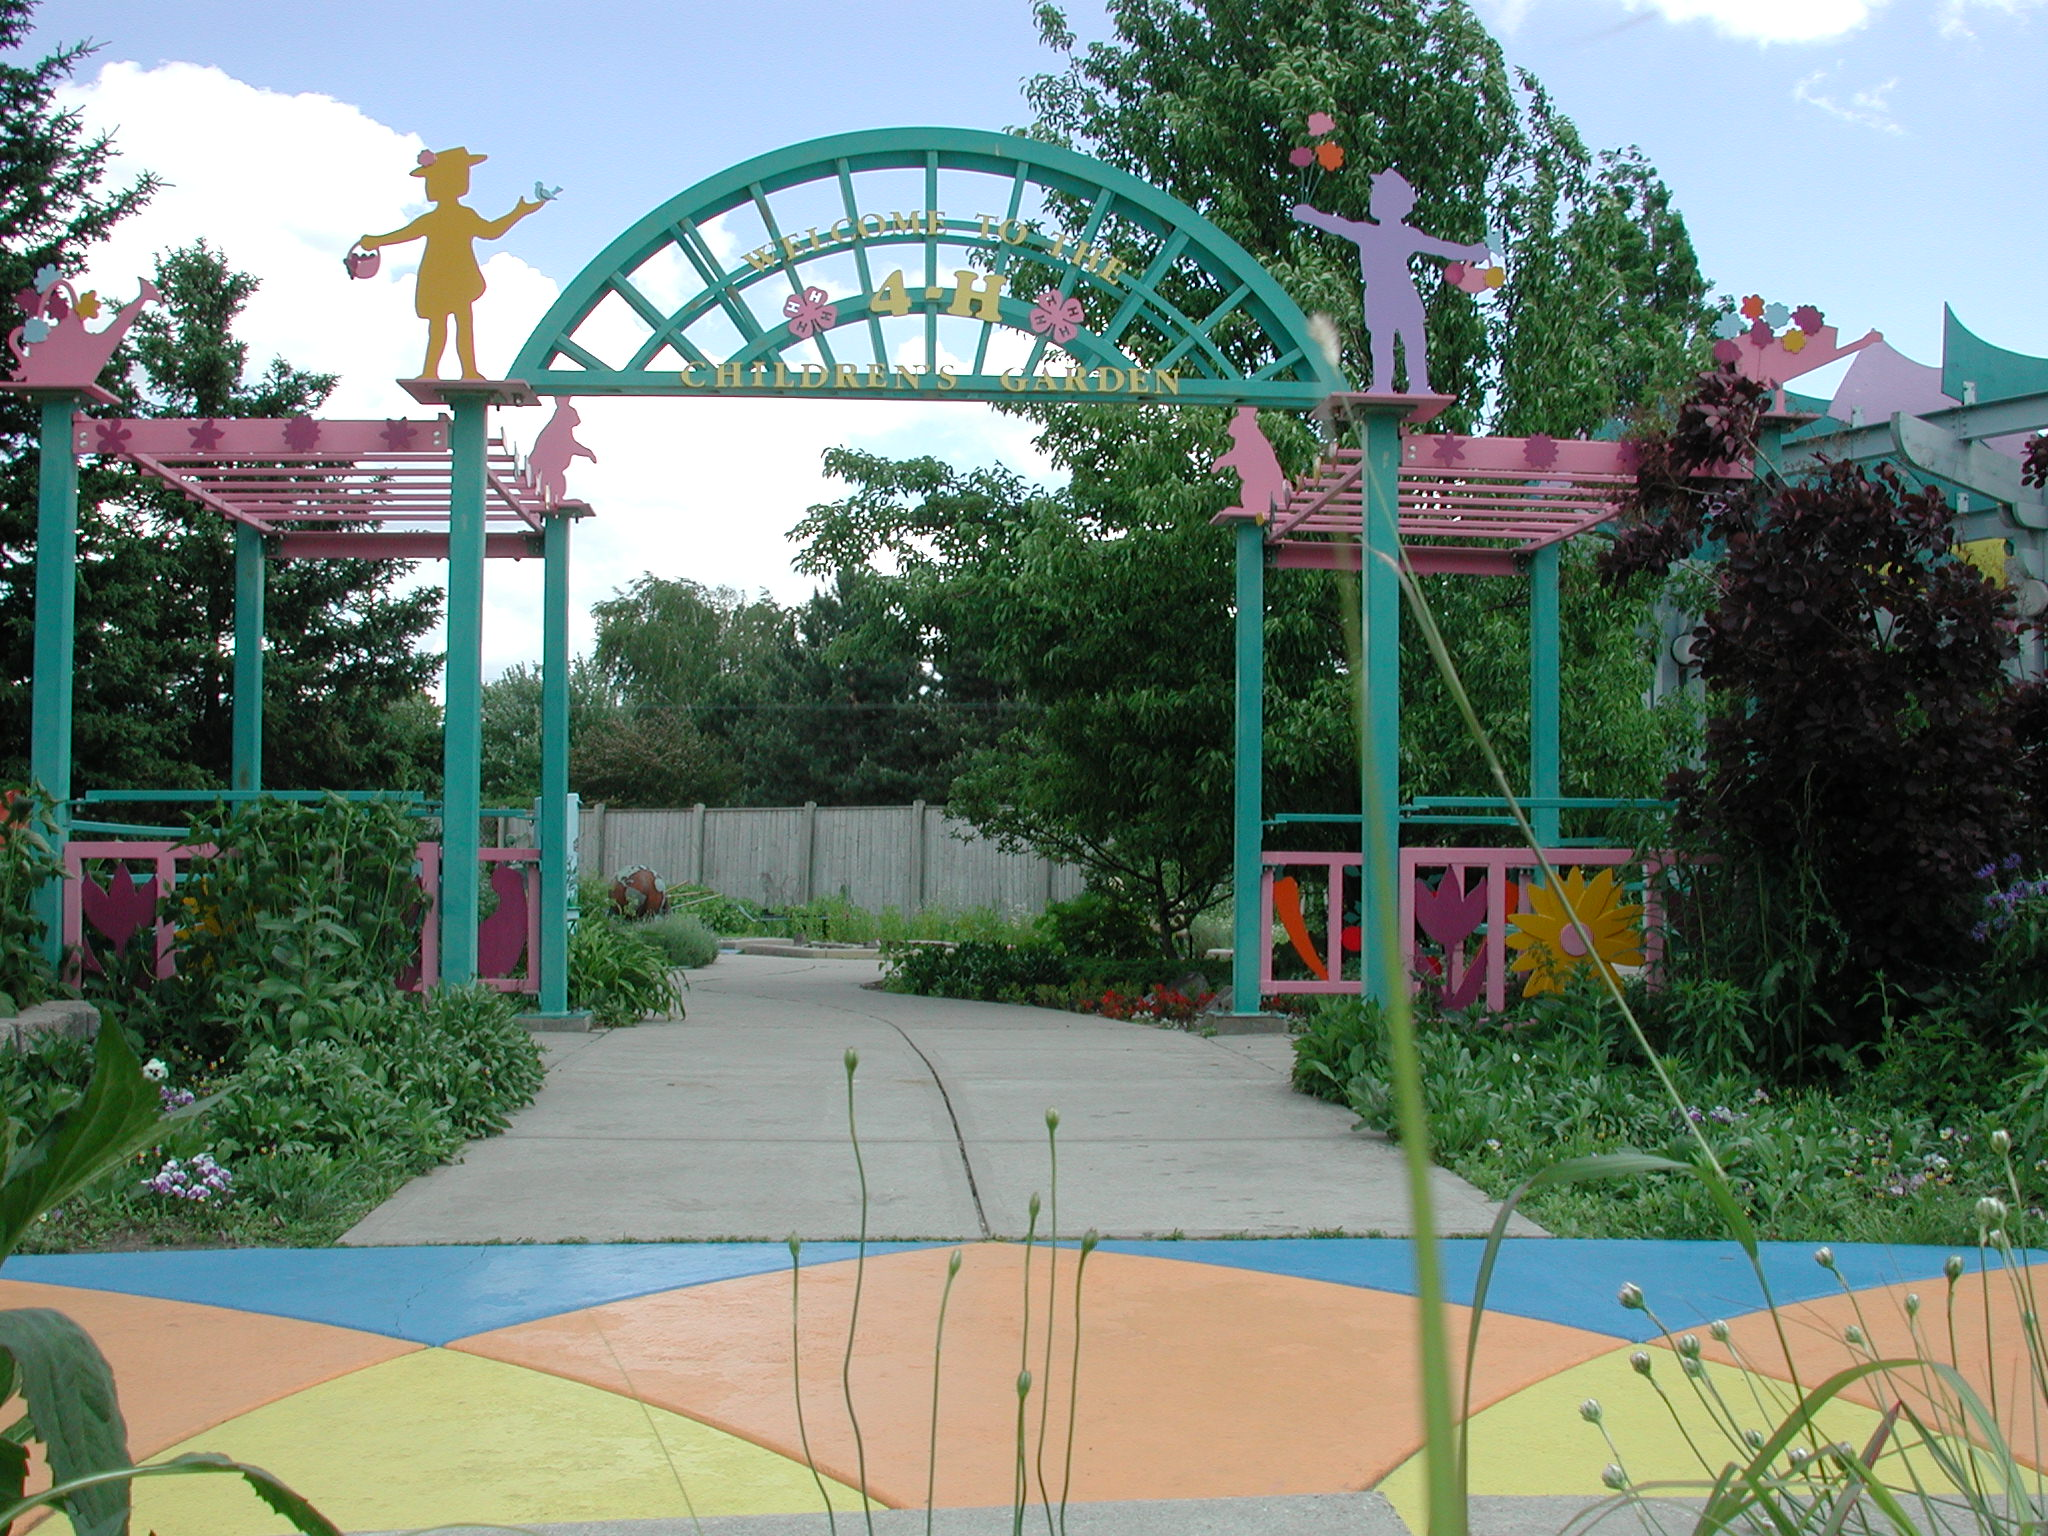 4-H Children's Gardens entrance